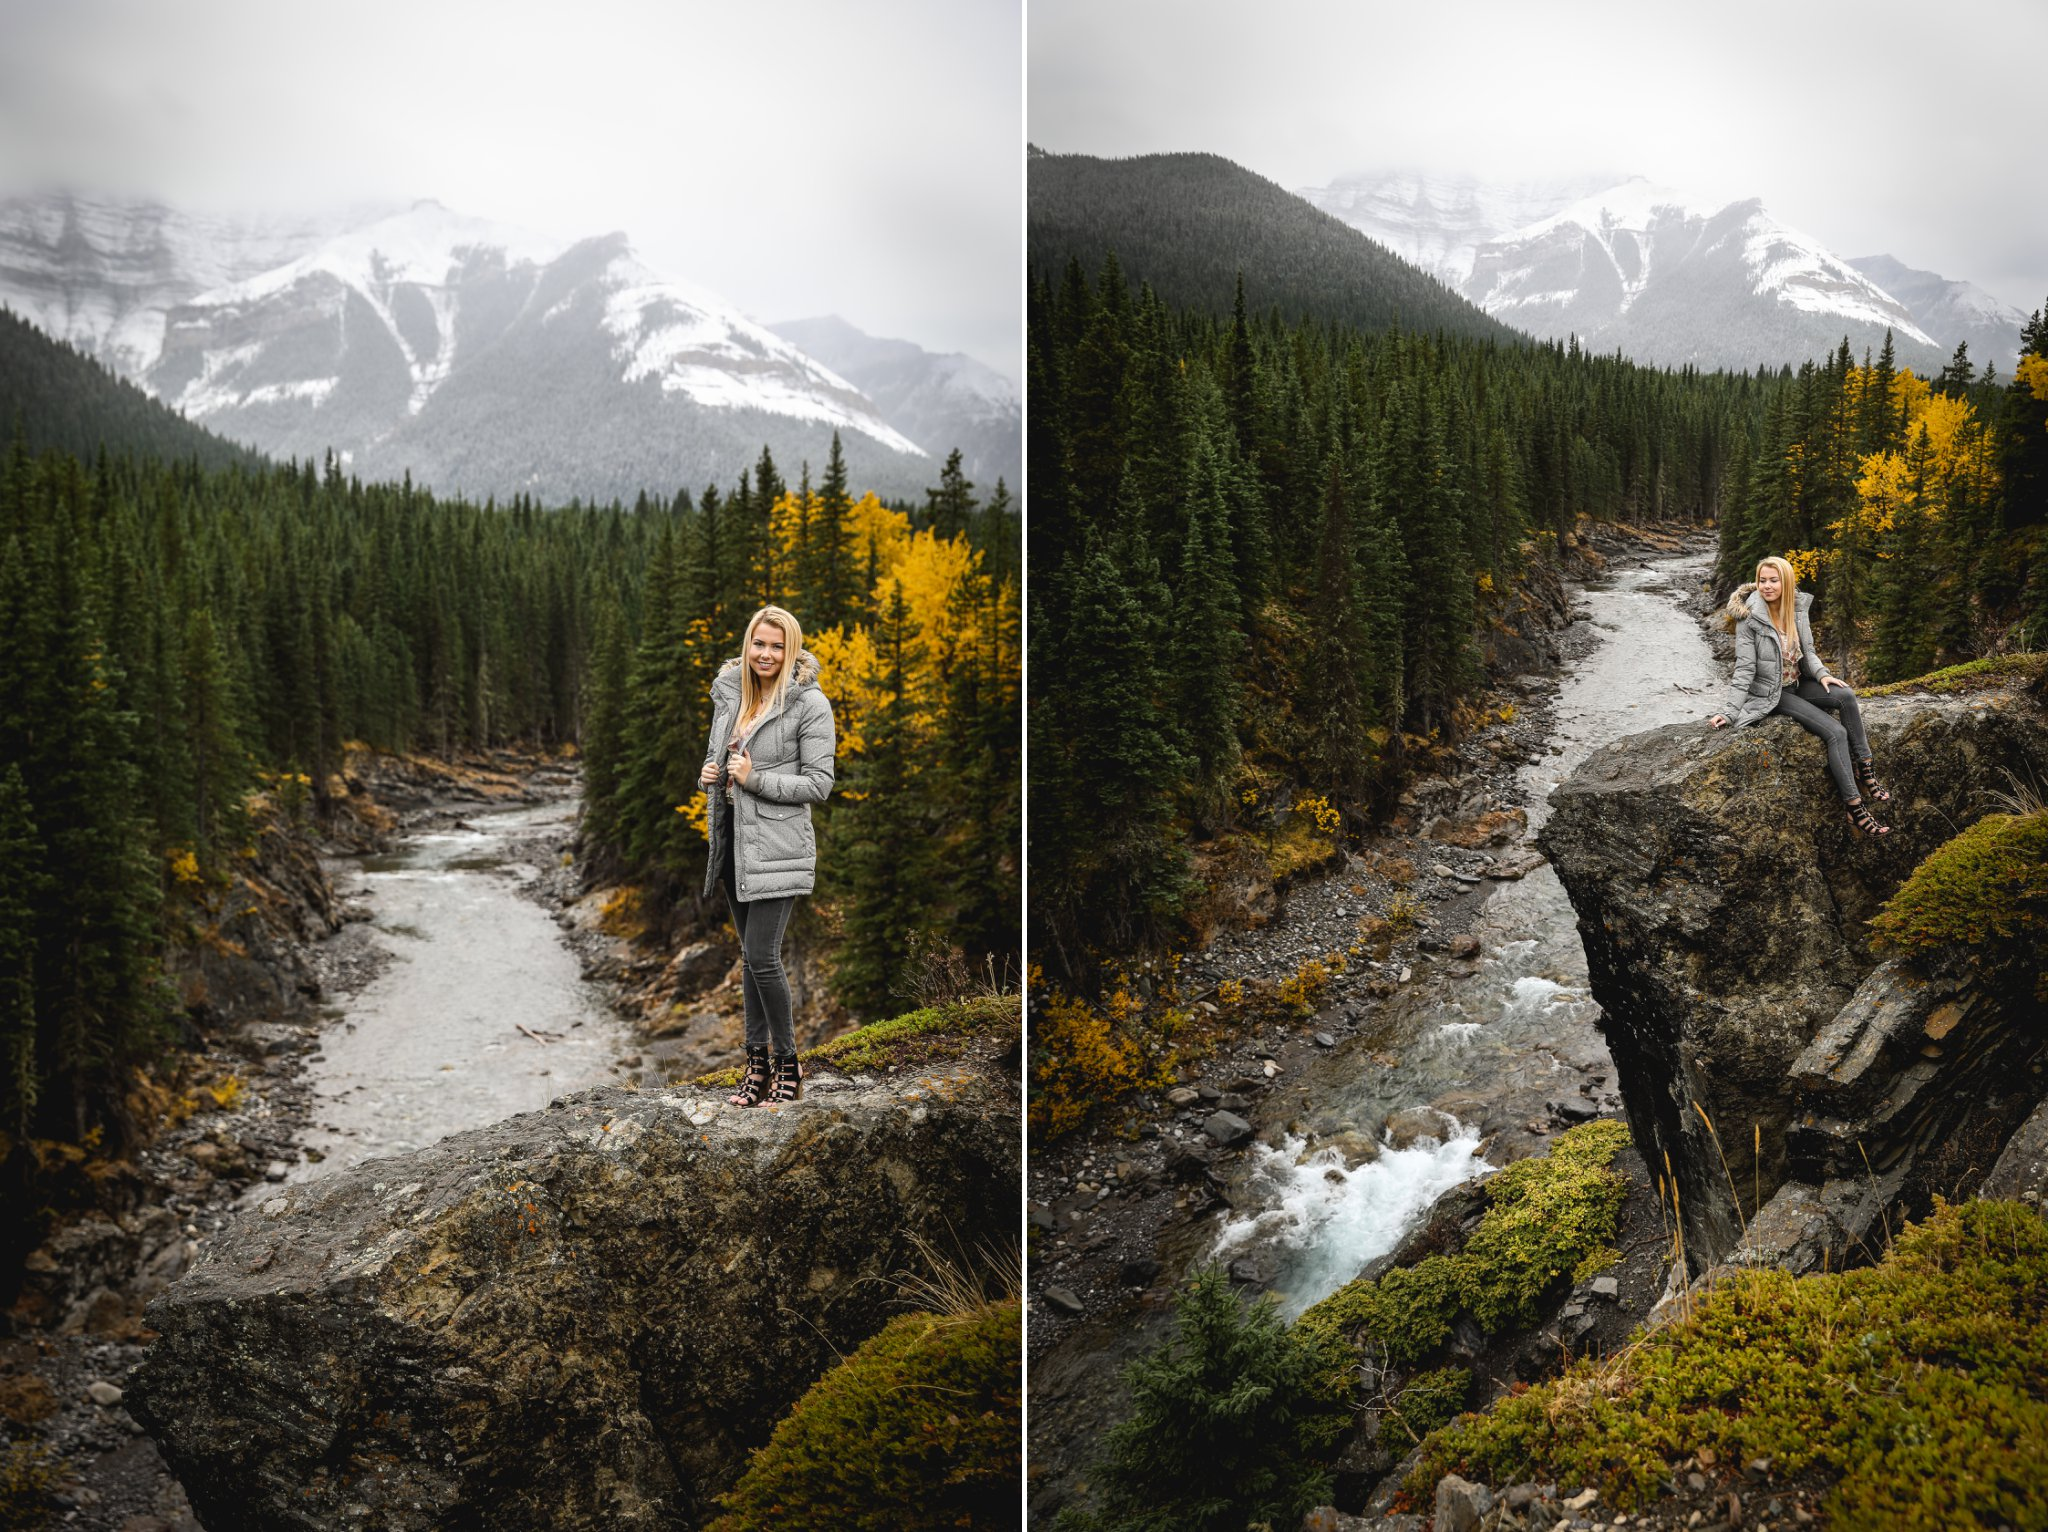 AshleyDaphnePhotography Calgary Photographer Wedding Family Senior Portraits Rocky Mountains Sheep River Falls Autumn Fall_0004.jpg